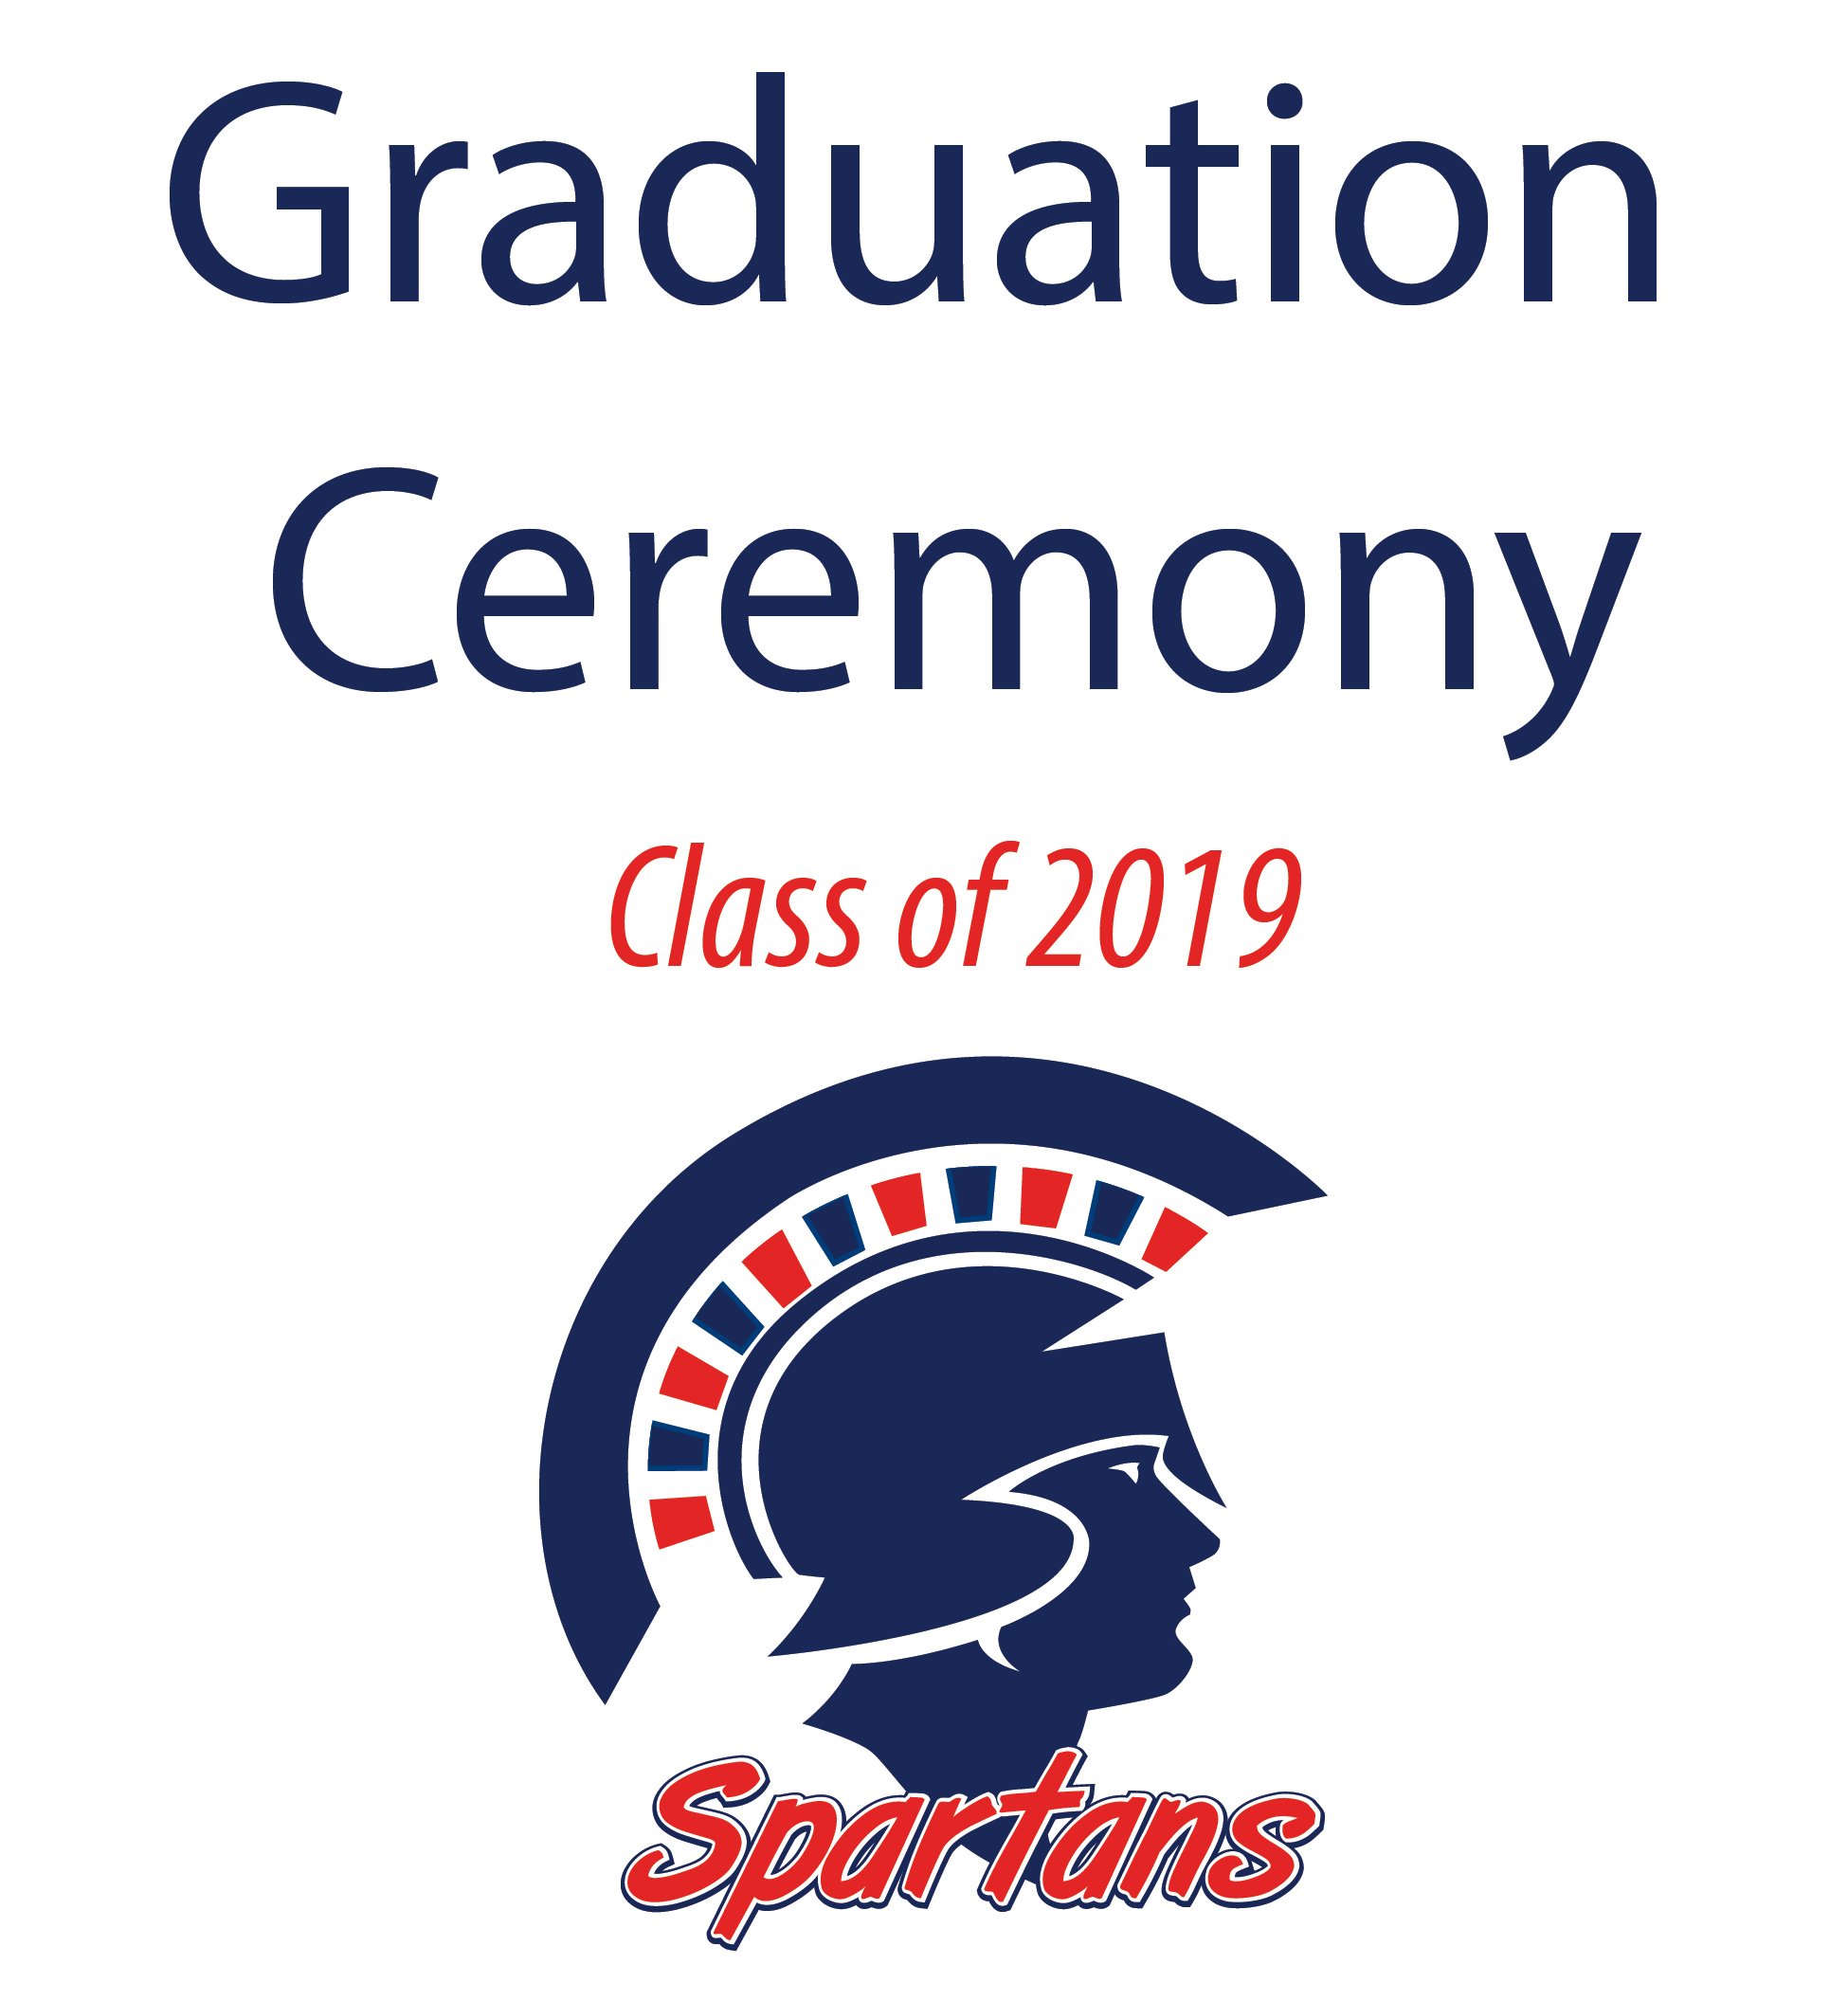 Brookfield East Graduation Ceremony Class of 2019